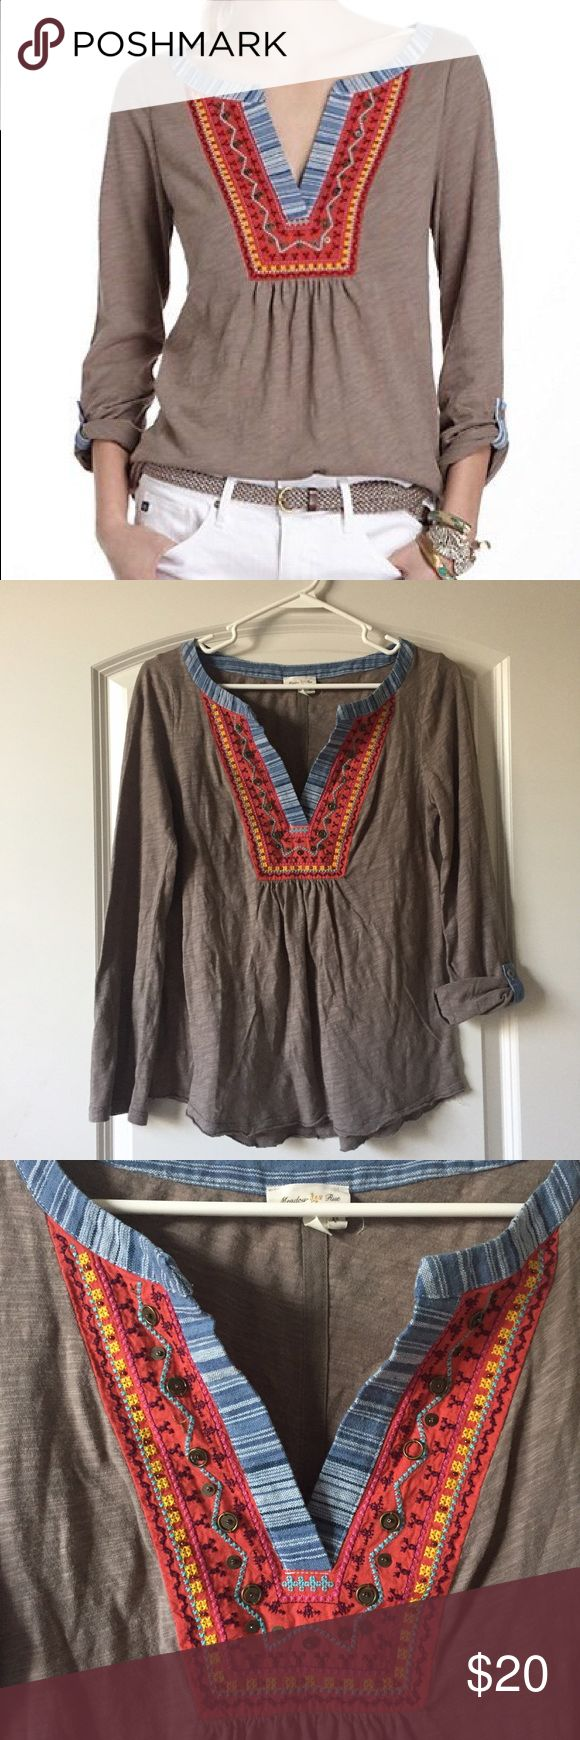 Anthropologie Cuocu Henley Top by Meadow Rue This item is in excellent used pre-loved condition. Can be worn as a long sleeve or rolled up (as shown). Size small. No issues or defects.  SAVE MONEY:  YES ✅ TRADES YES ✅ OFFERS  YES ✅ BUNDLES OF 2 OR MORE- 10% OFF Anthropologie Tops Blouses